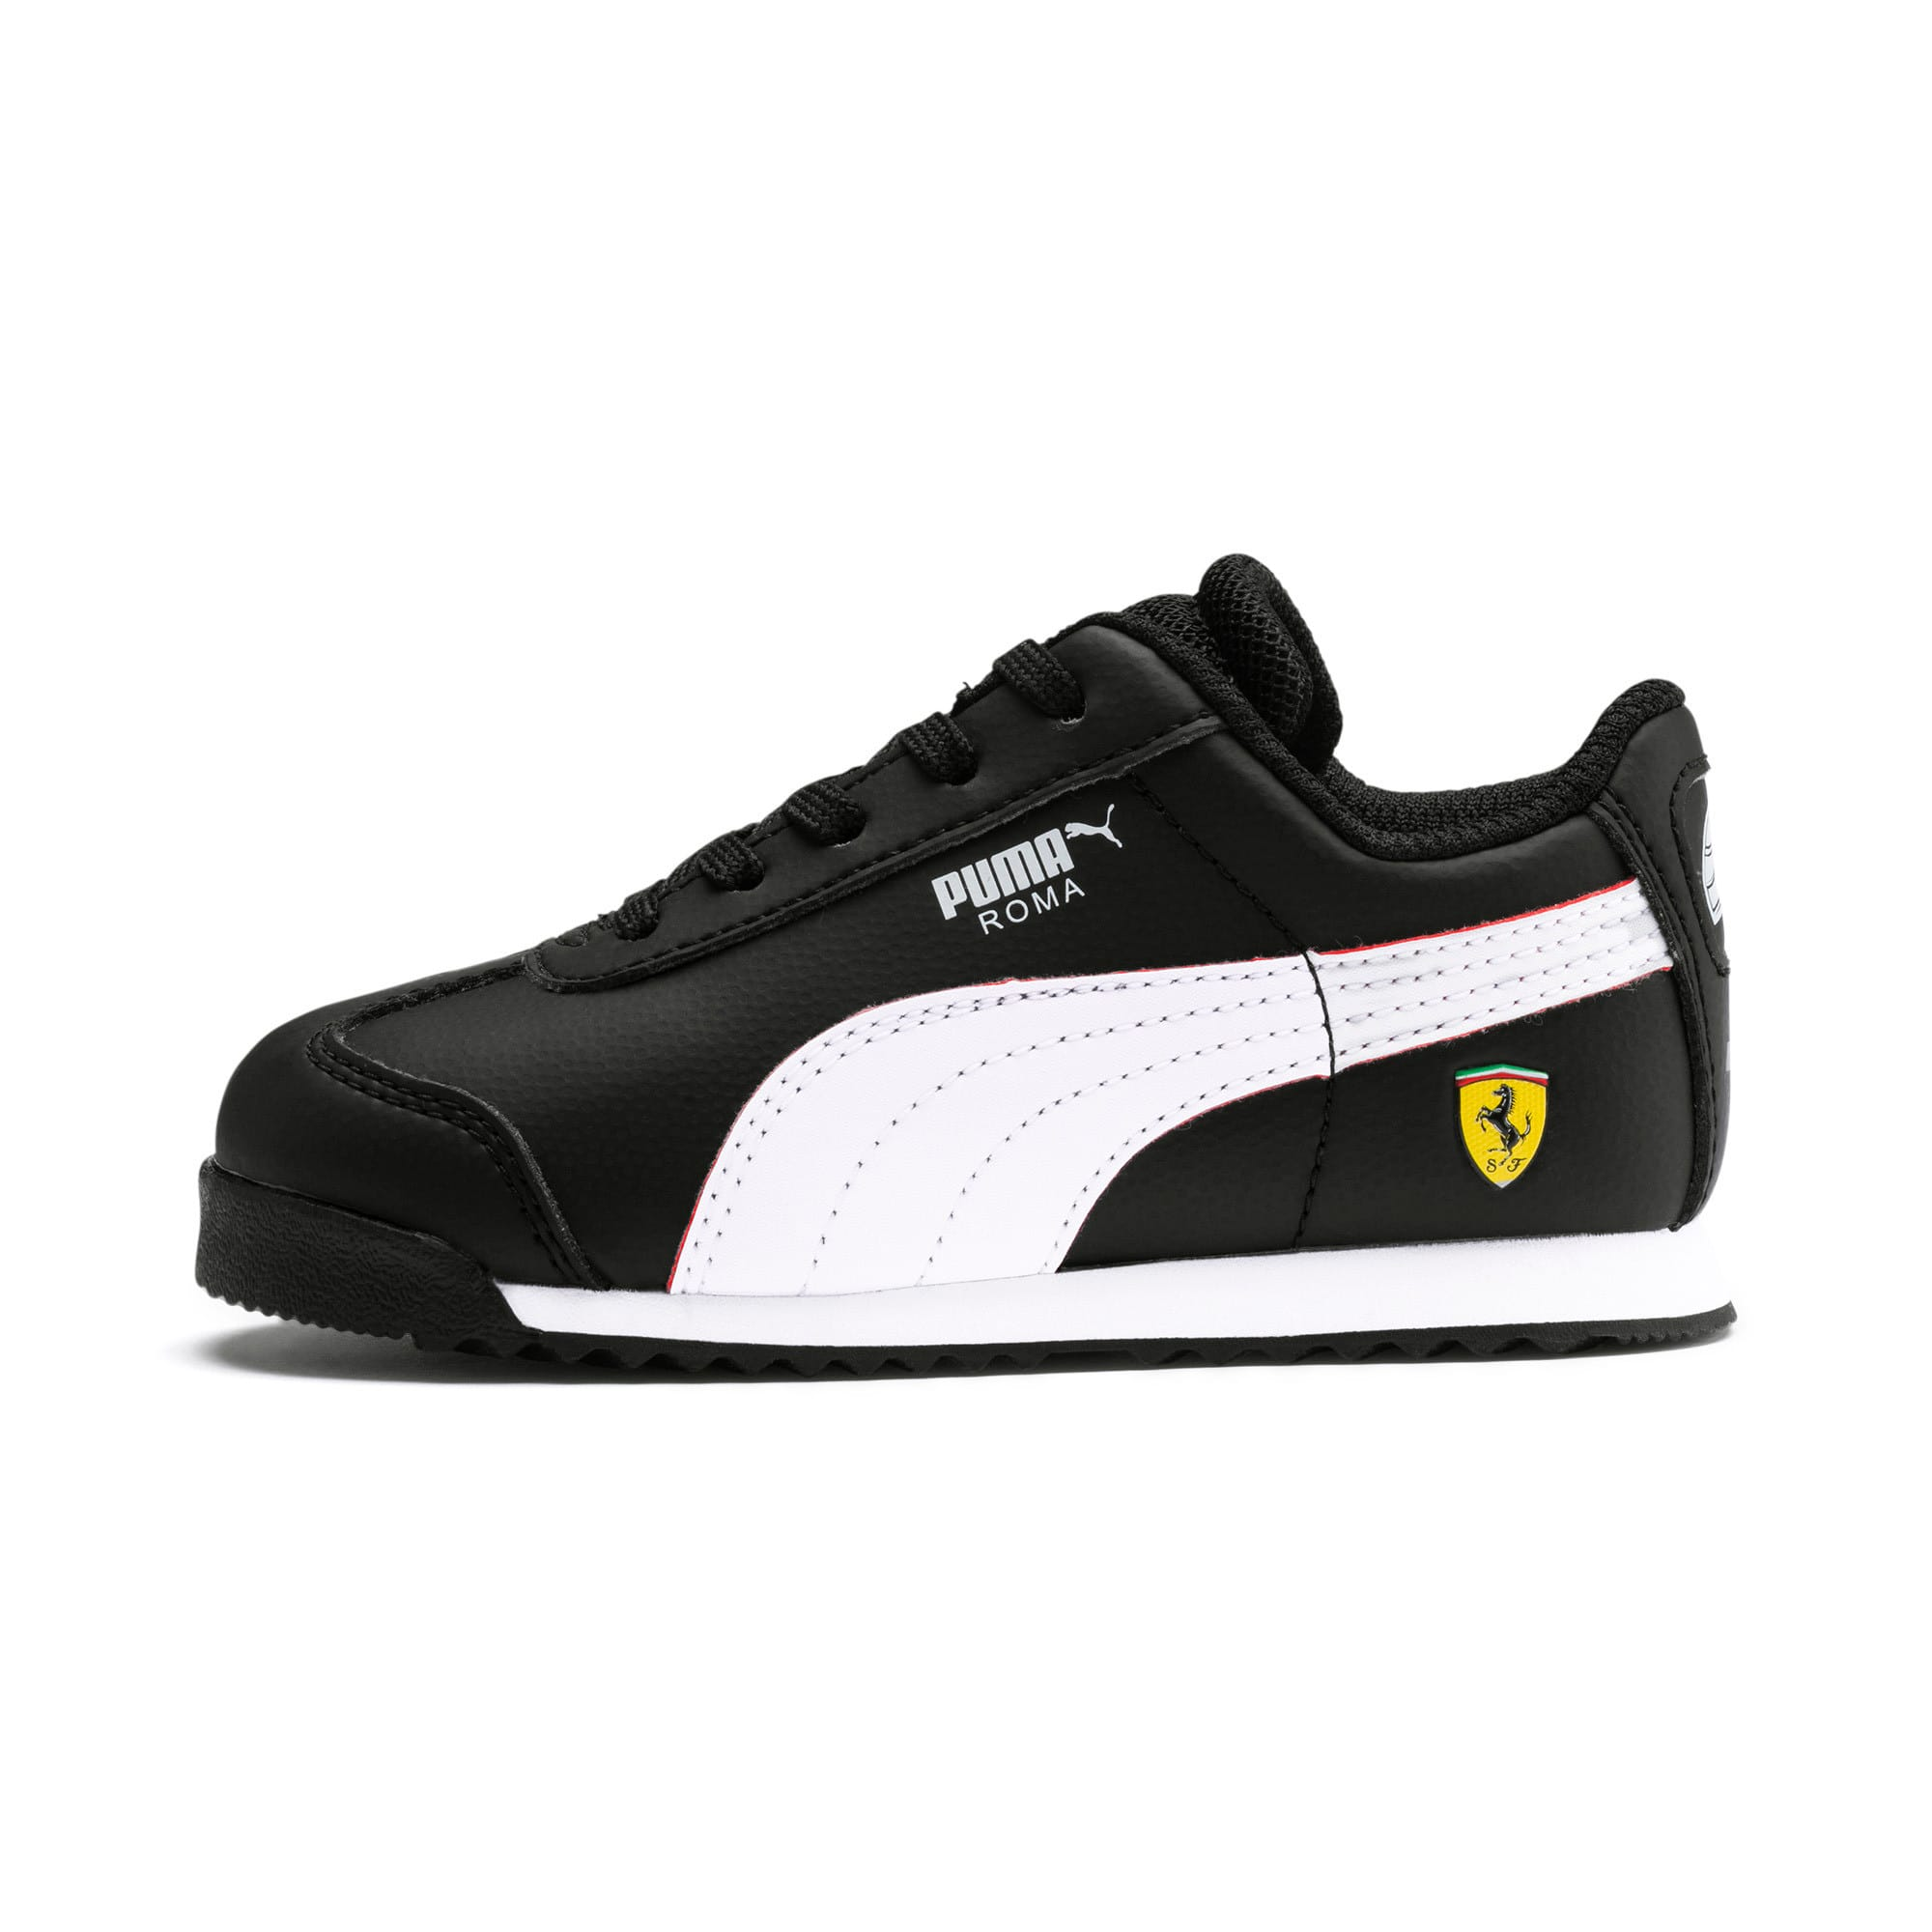 Thumbnail 1 of Scuderia Ferrari Roma Toddler Shoes, Black-White-Rosso Corsa, medium